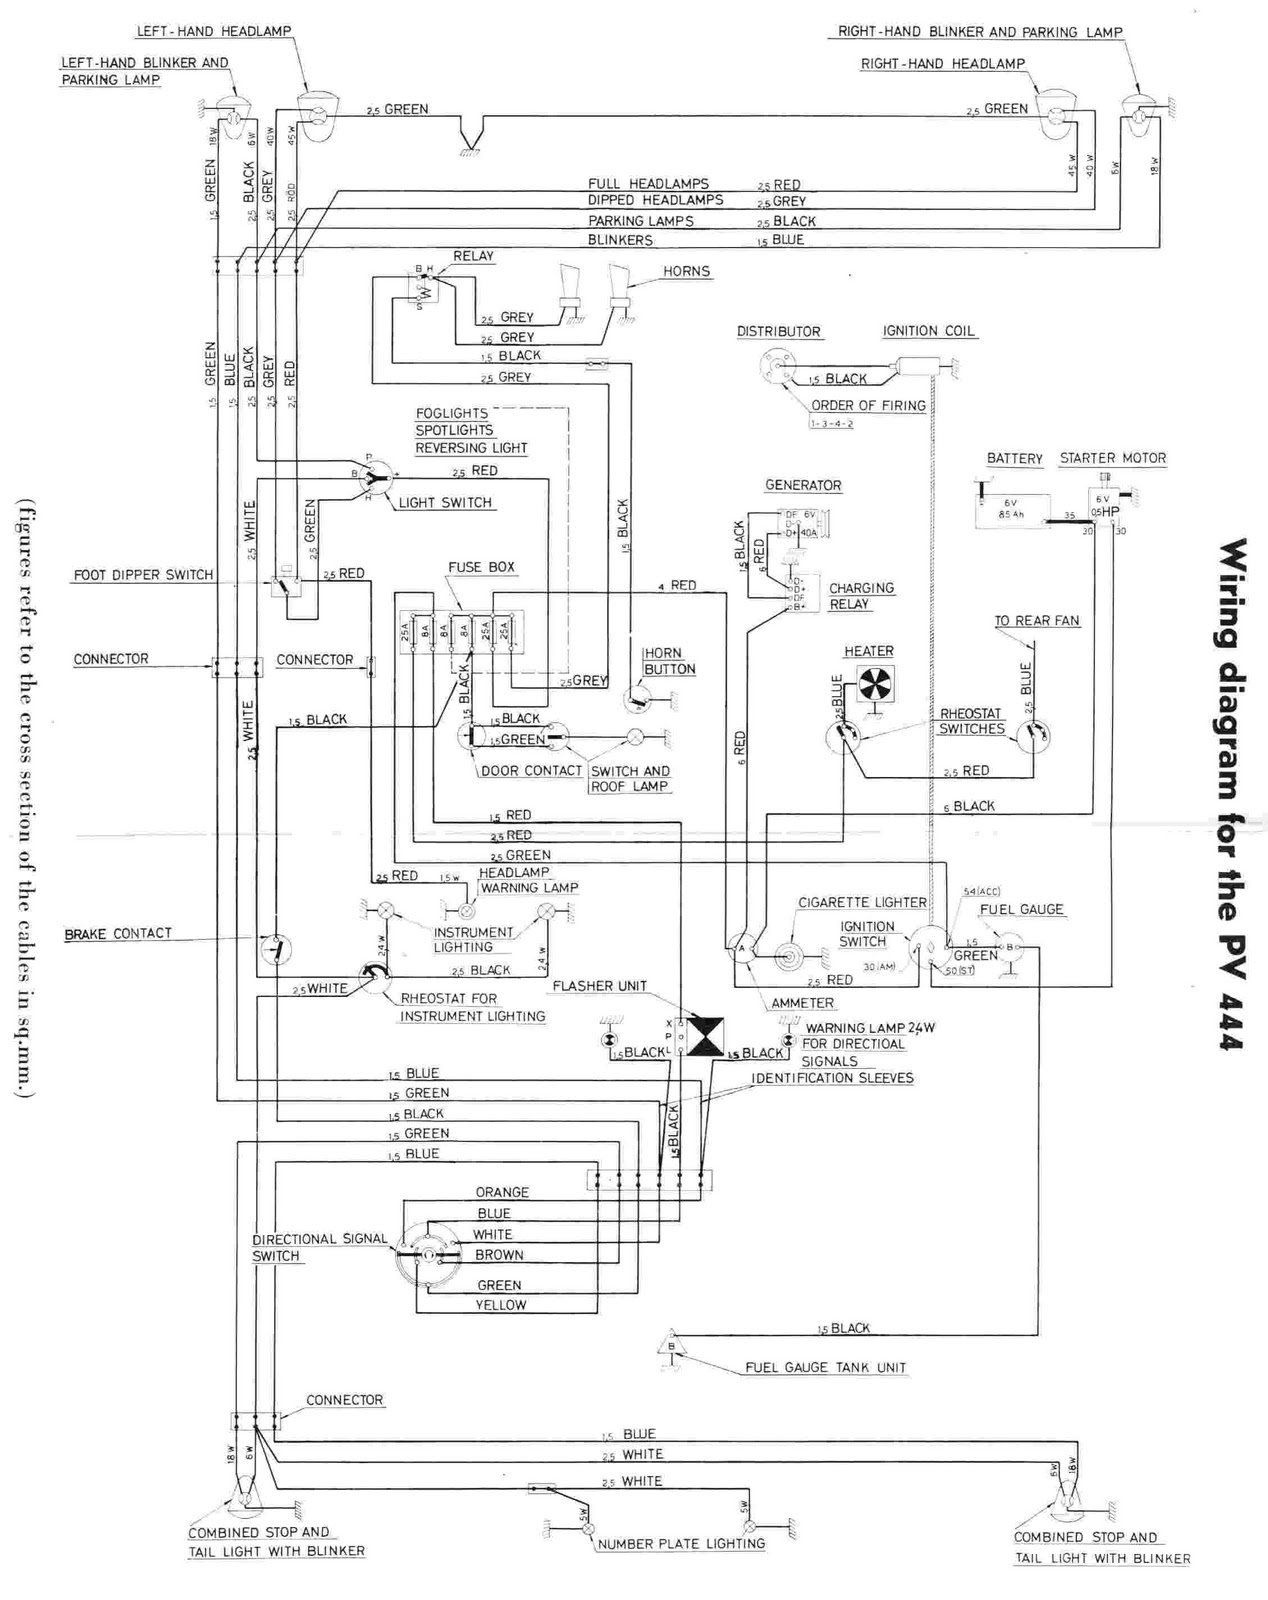 Wiring Diagram Of Volvo PV444 | All about Wiring Diagrams